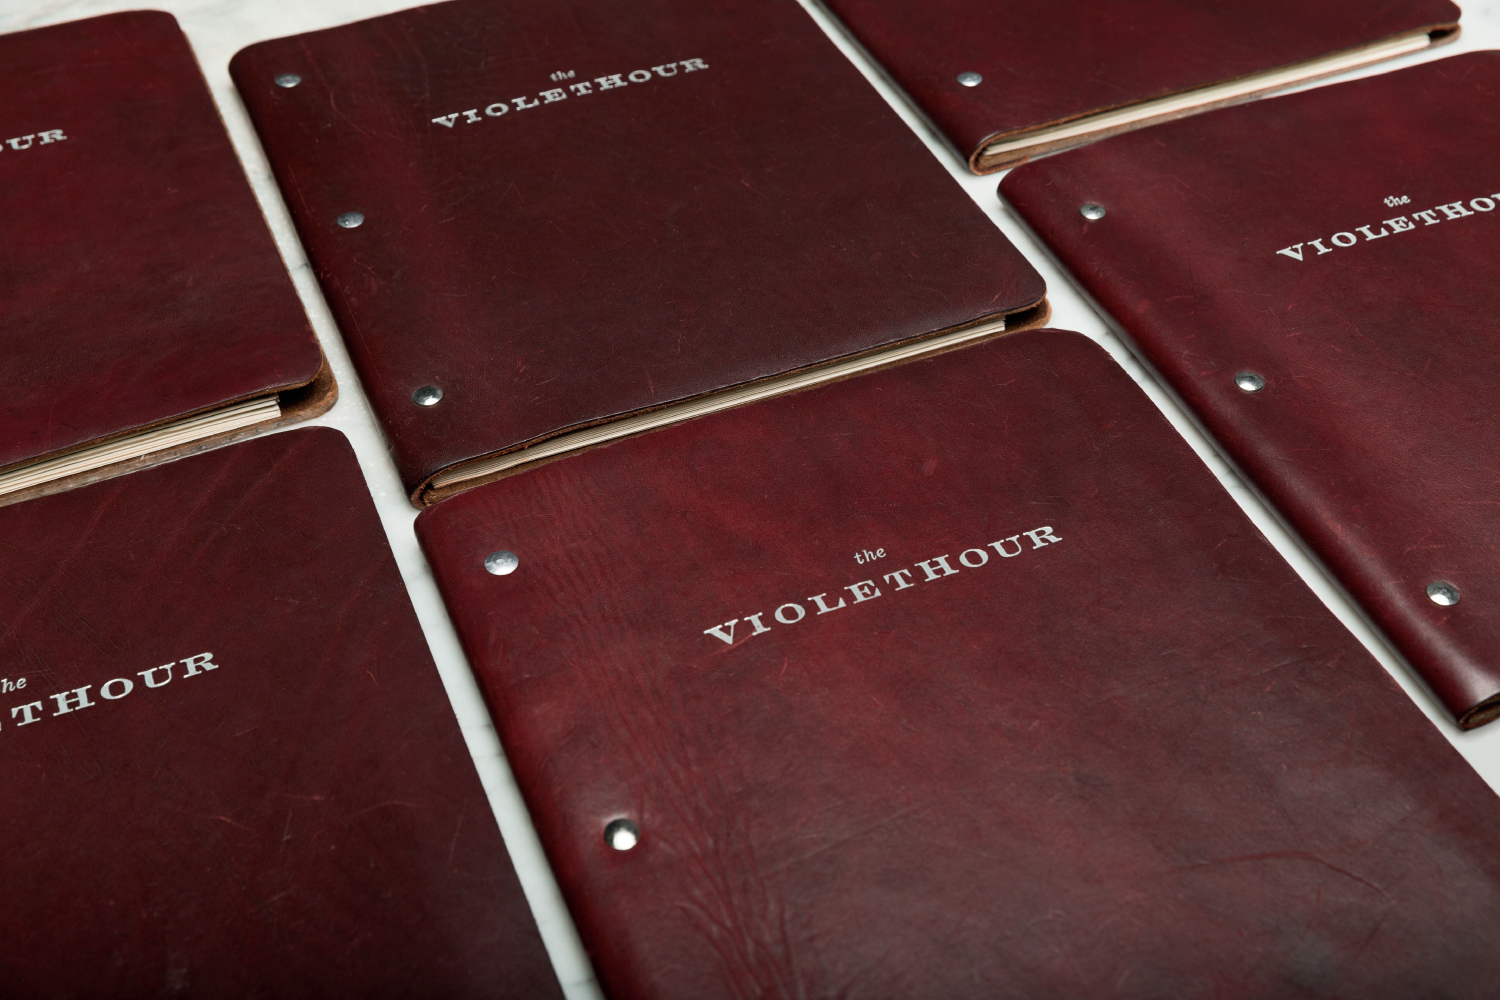 The Violet Hour Chicago graphic design and custom leather menu covers.